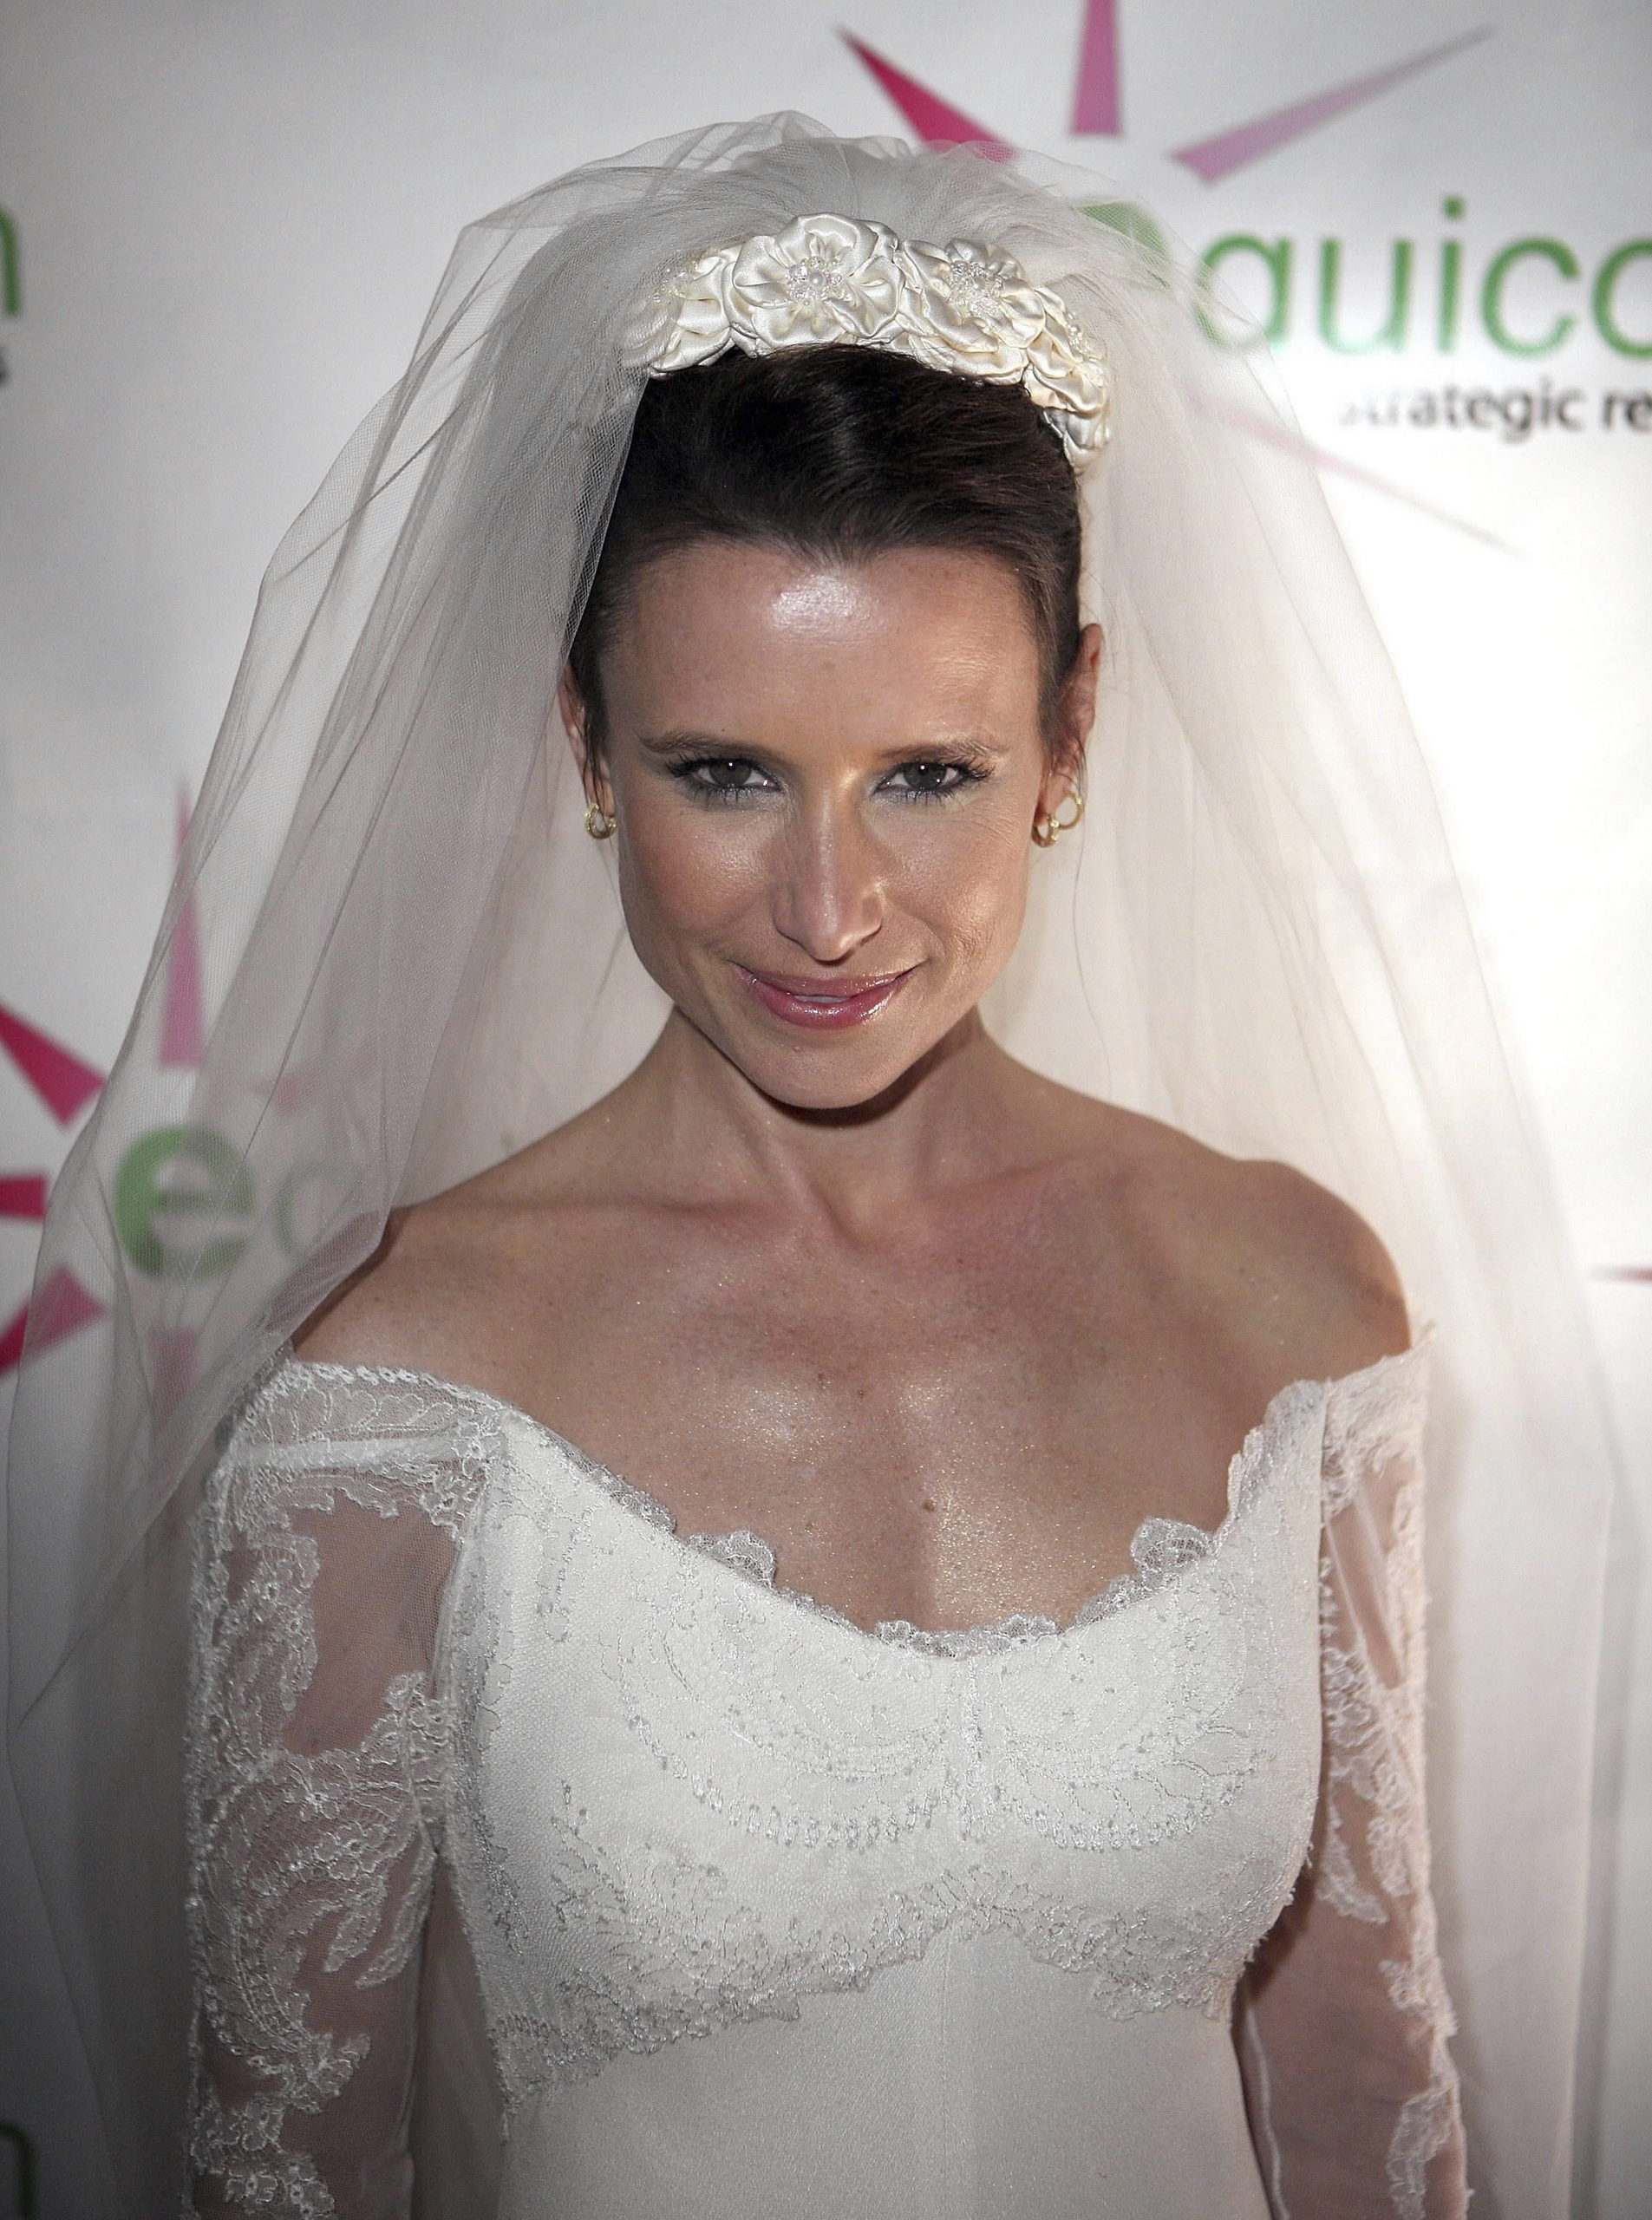 Shawnee smith images shawnee smith hd wallpaper and background photos